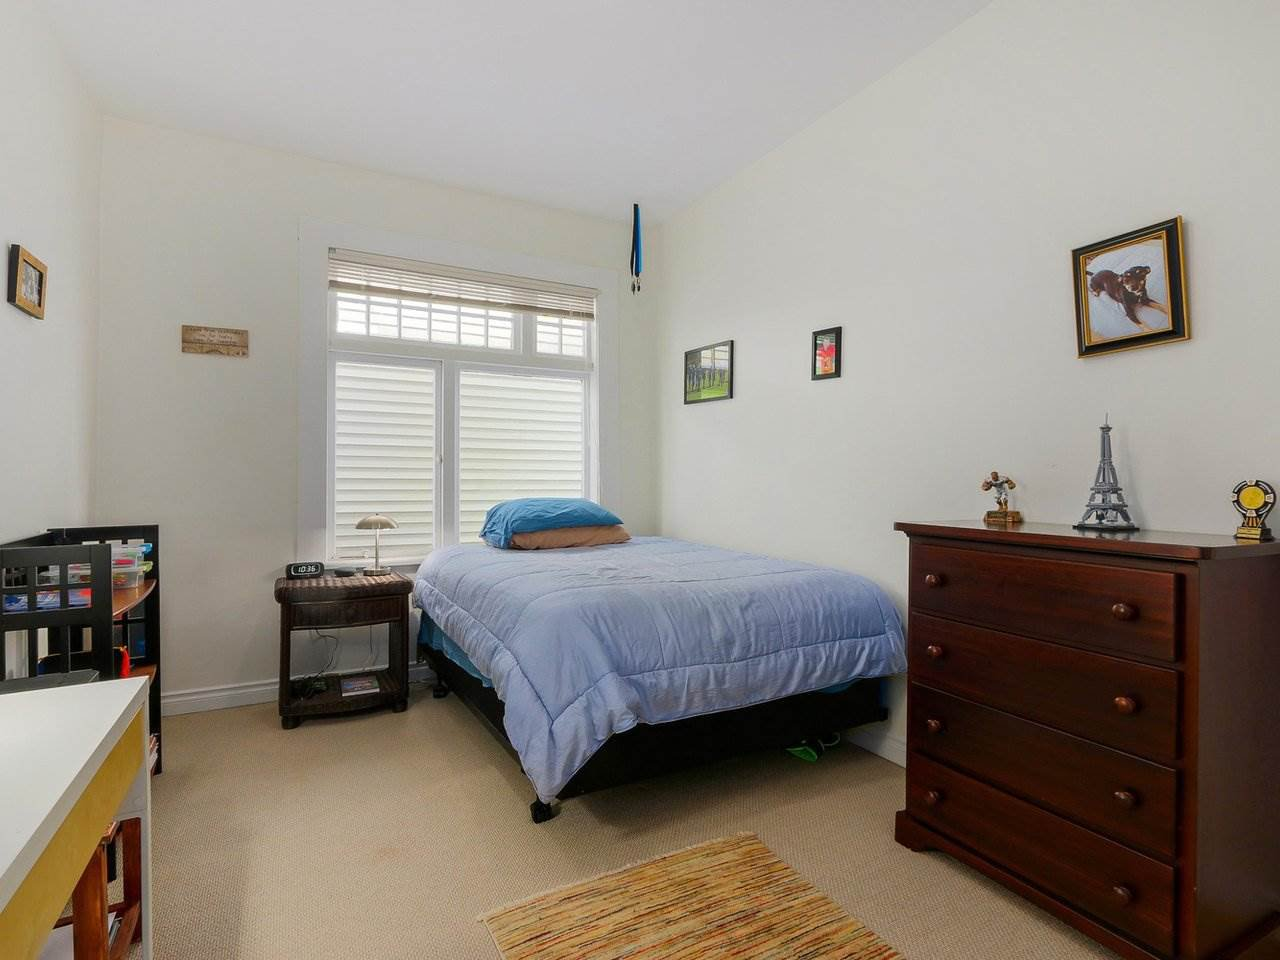 """Photo 7: Photos: 2610 W 10TH Avenue in Vancouver: Kitsilano House for sale in """"Kitsilano"""" (Vancouver West)  : MLS®# R2471992"""